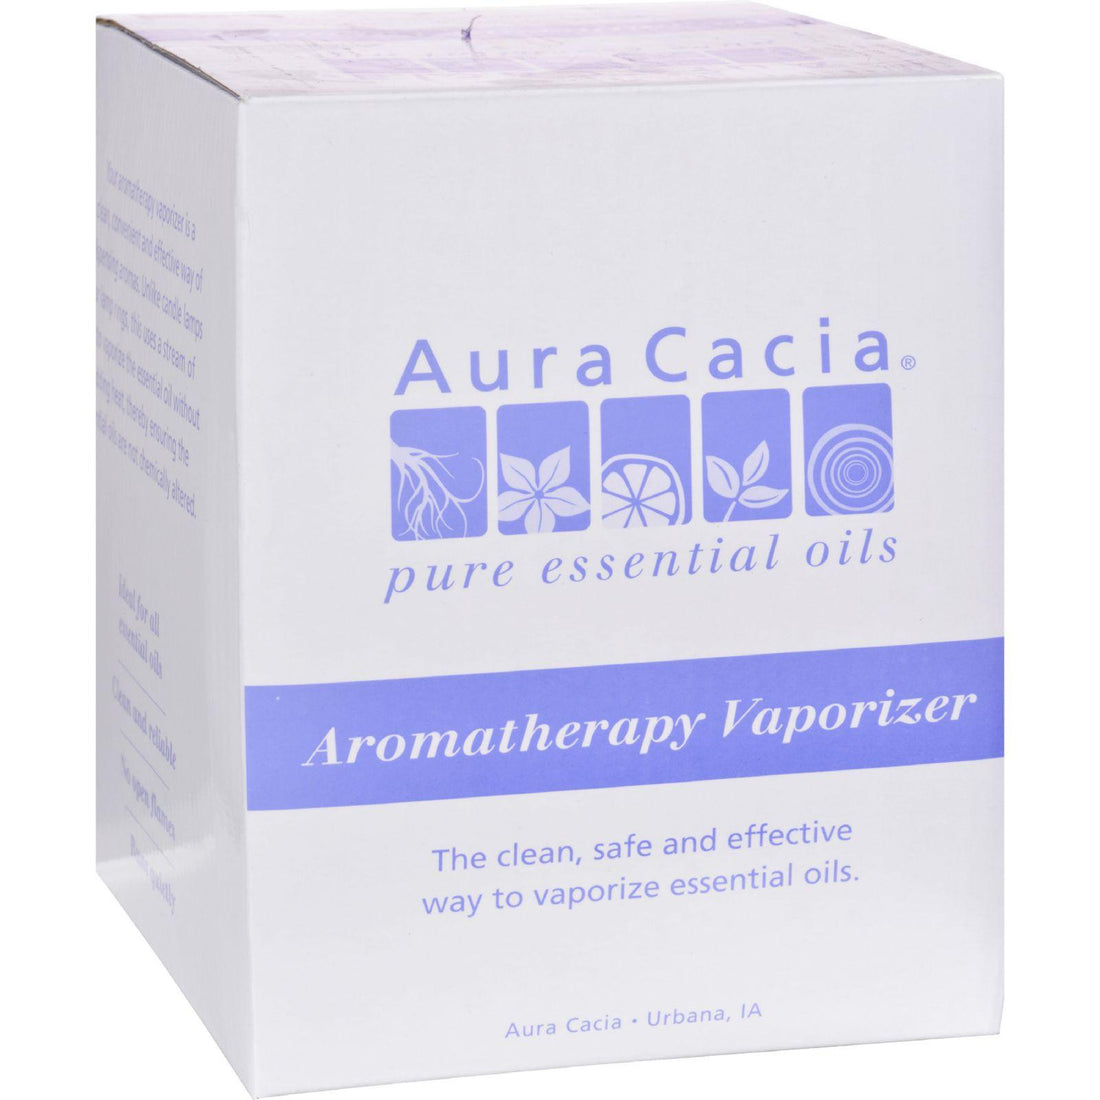 Mother Mantis: Aura Cacia Aromatherapy Vaporizer With Oil Aura Cacia